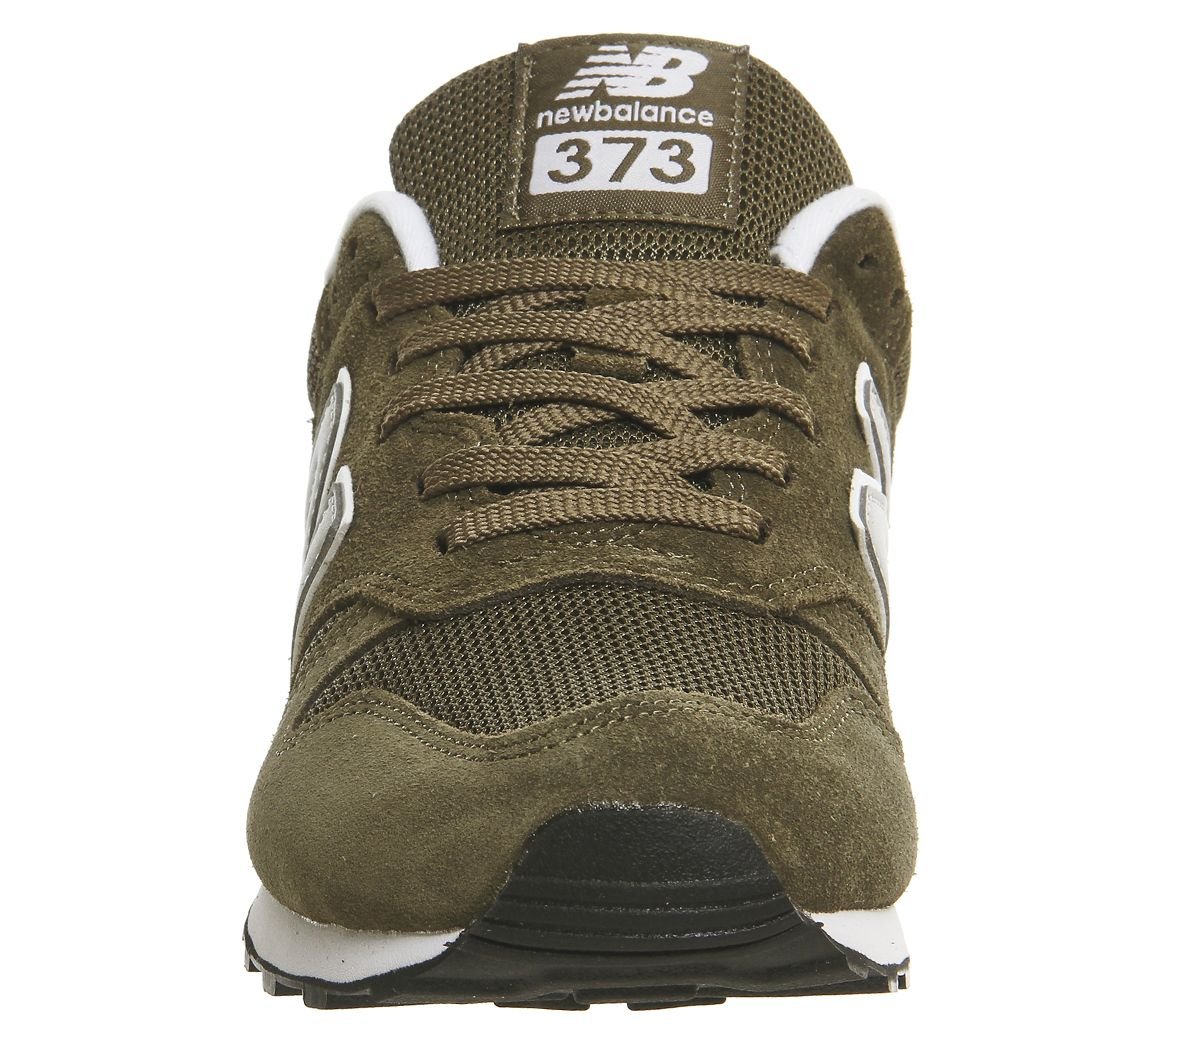 3bfffe0dc0b Sentinel Mens New Balance 373 Olive Silver Trainers Shoes